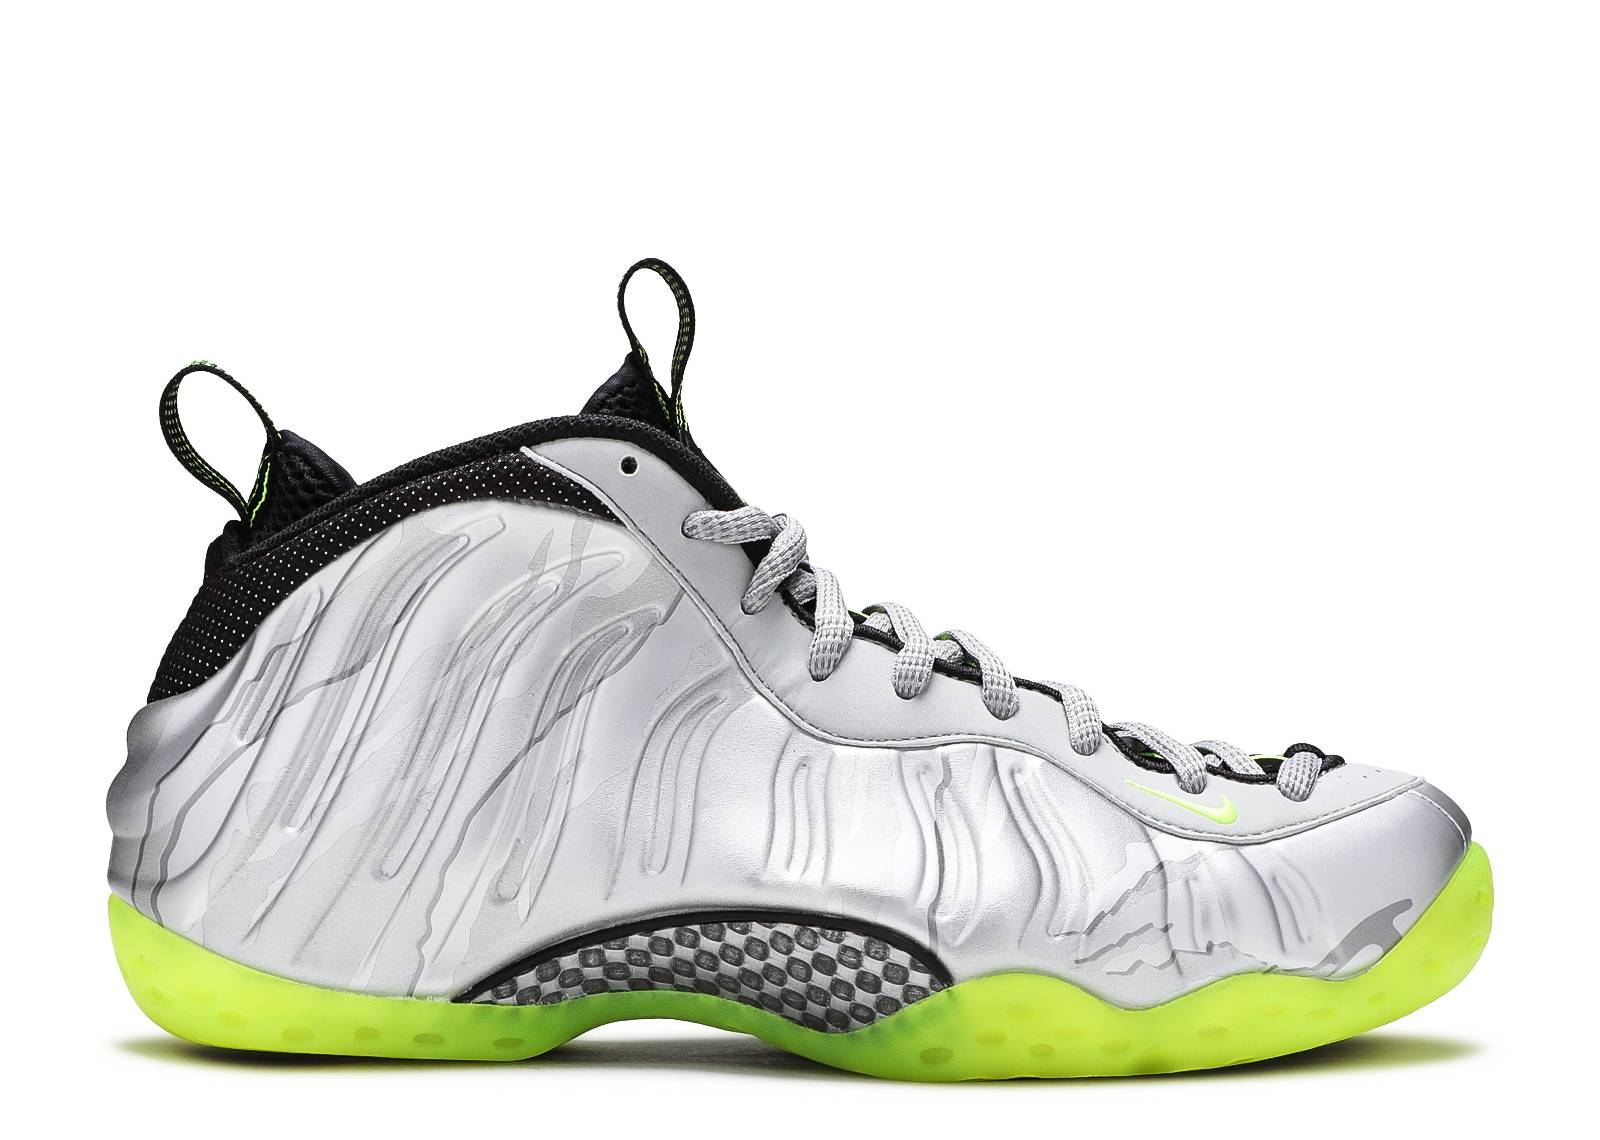 605d3fb1b14 Air Foamposite One Prm